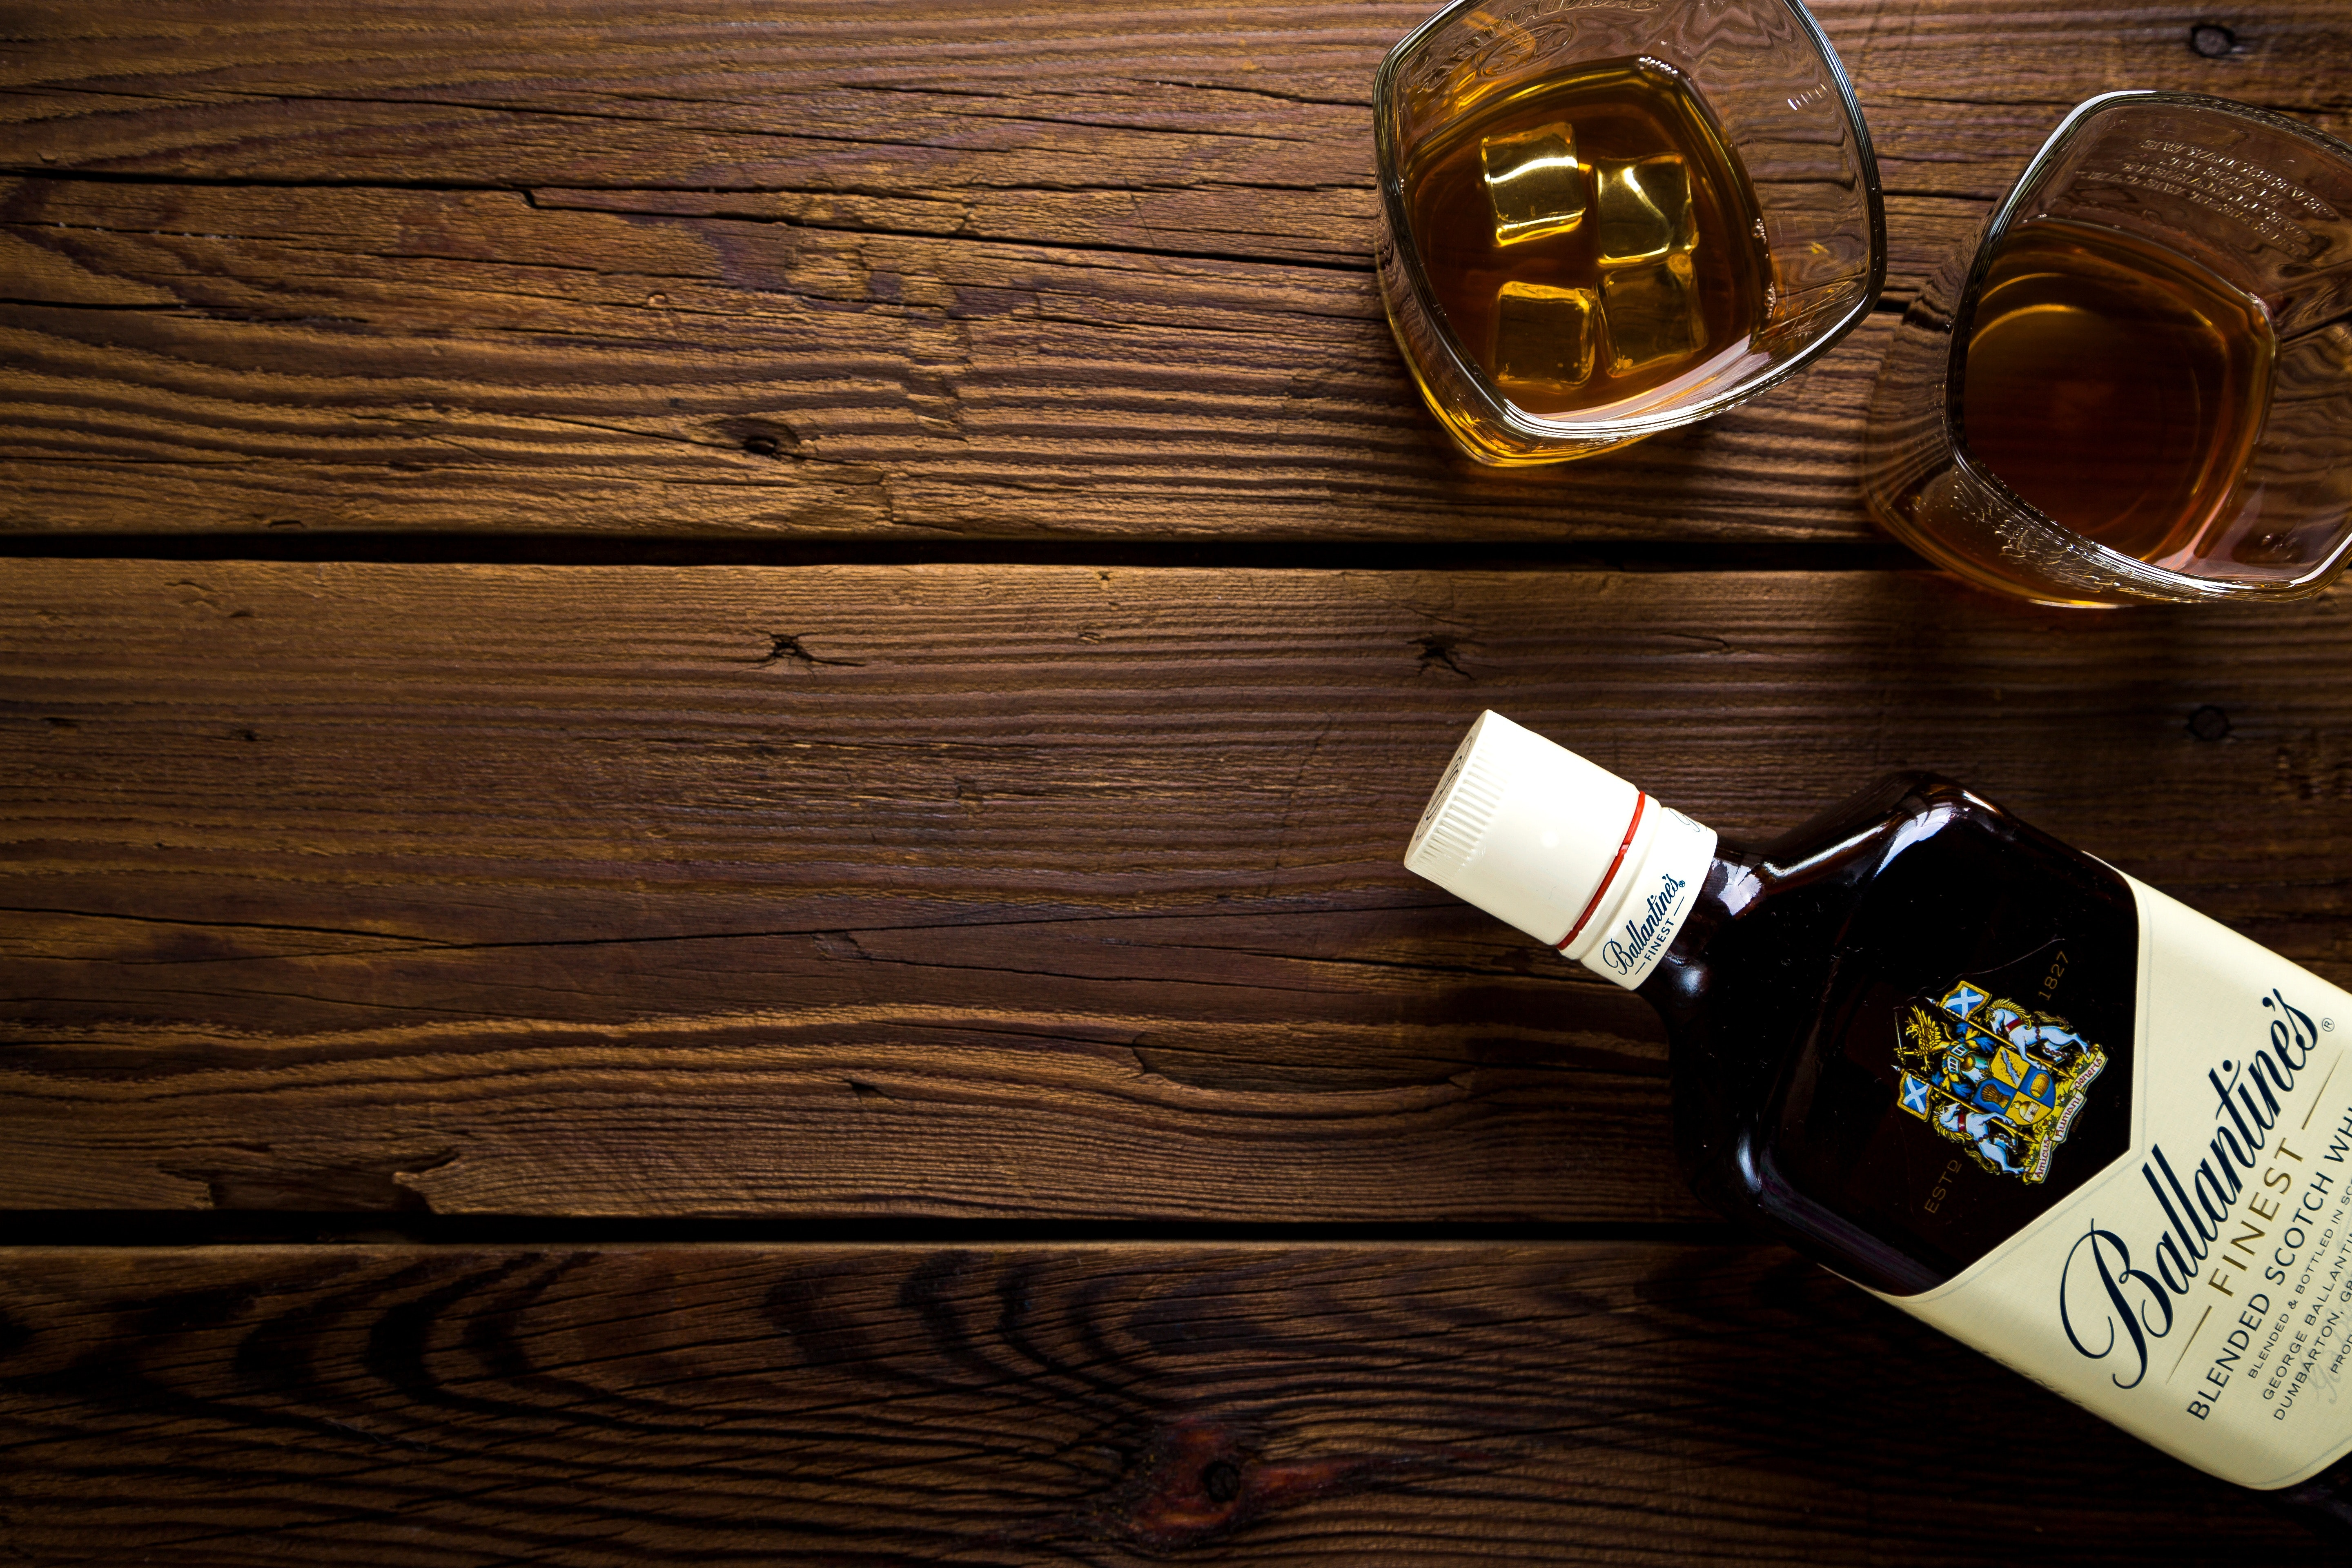 Whisky Full Hd Wallpaper And Background: Ballantine's Bottle With Two Rock Glasses · Free Stock Photo